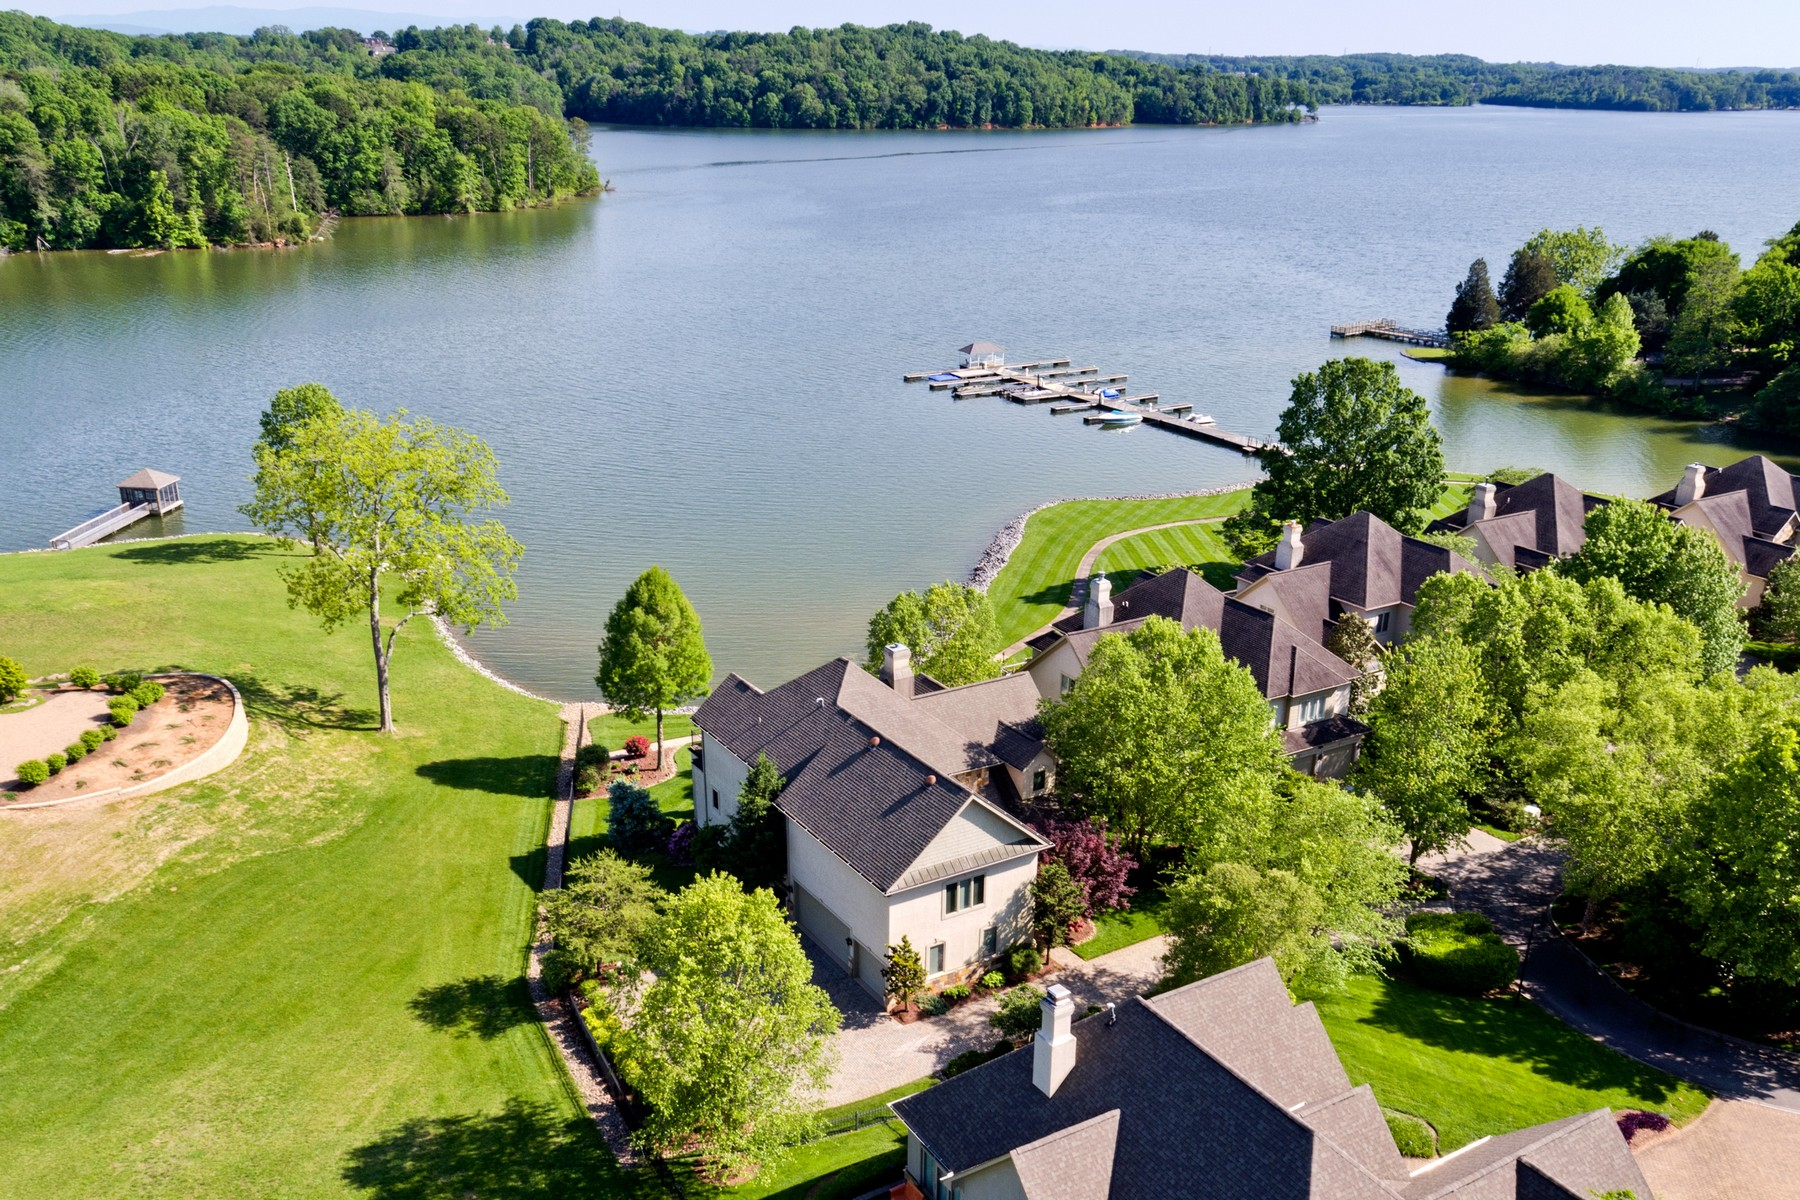 Single Family Home for Sale at Easy Living Lakeside 370 Casa del Lago Way Lenoir City, Tennessee 37772 United States